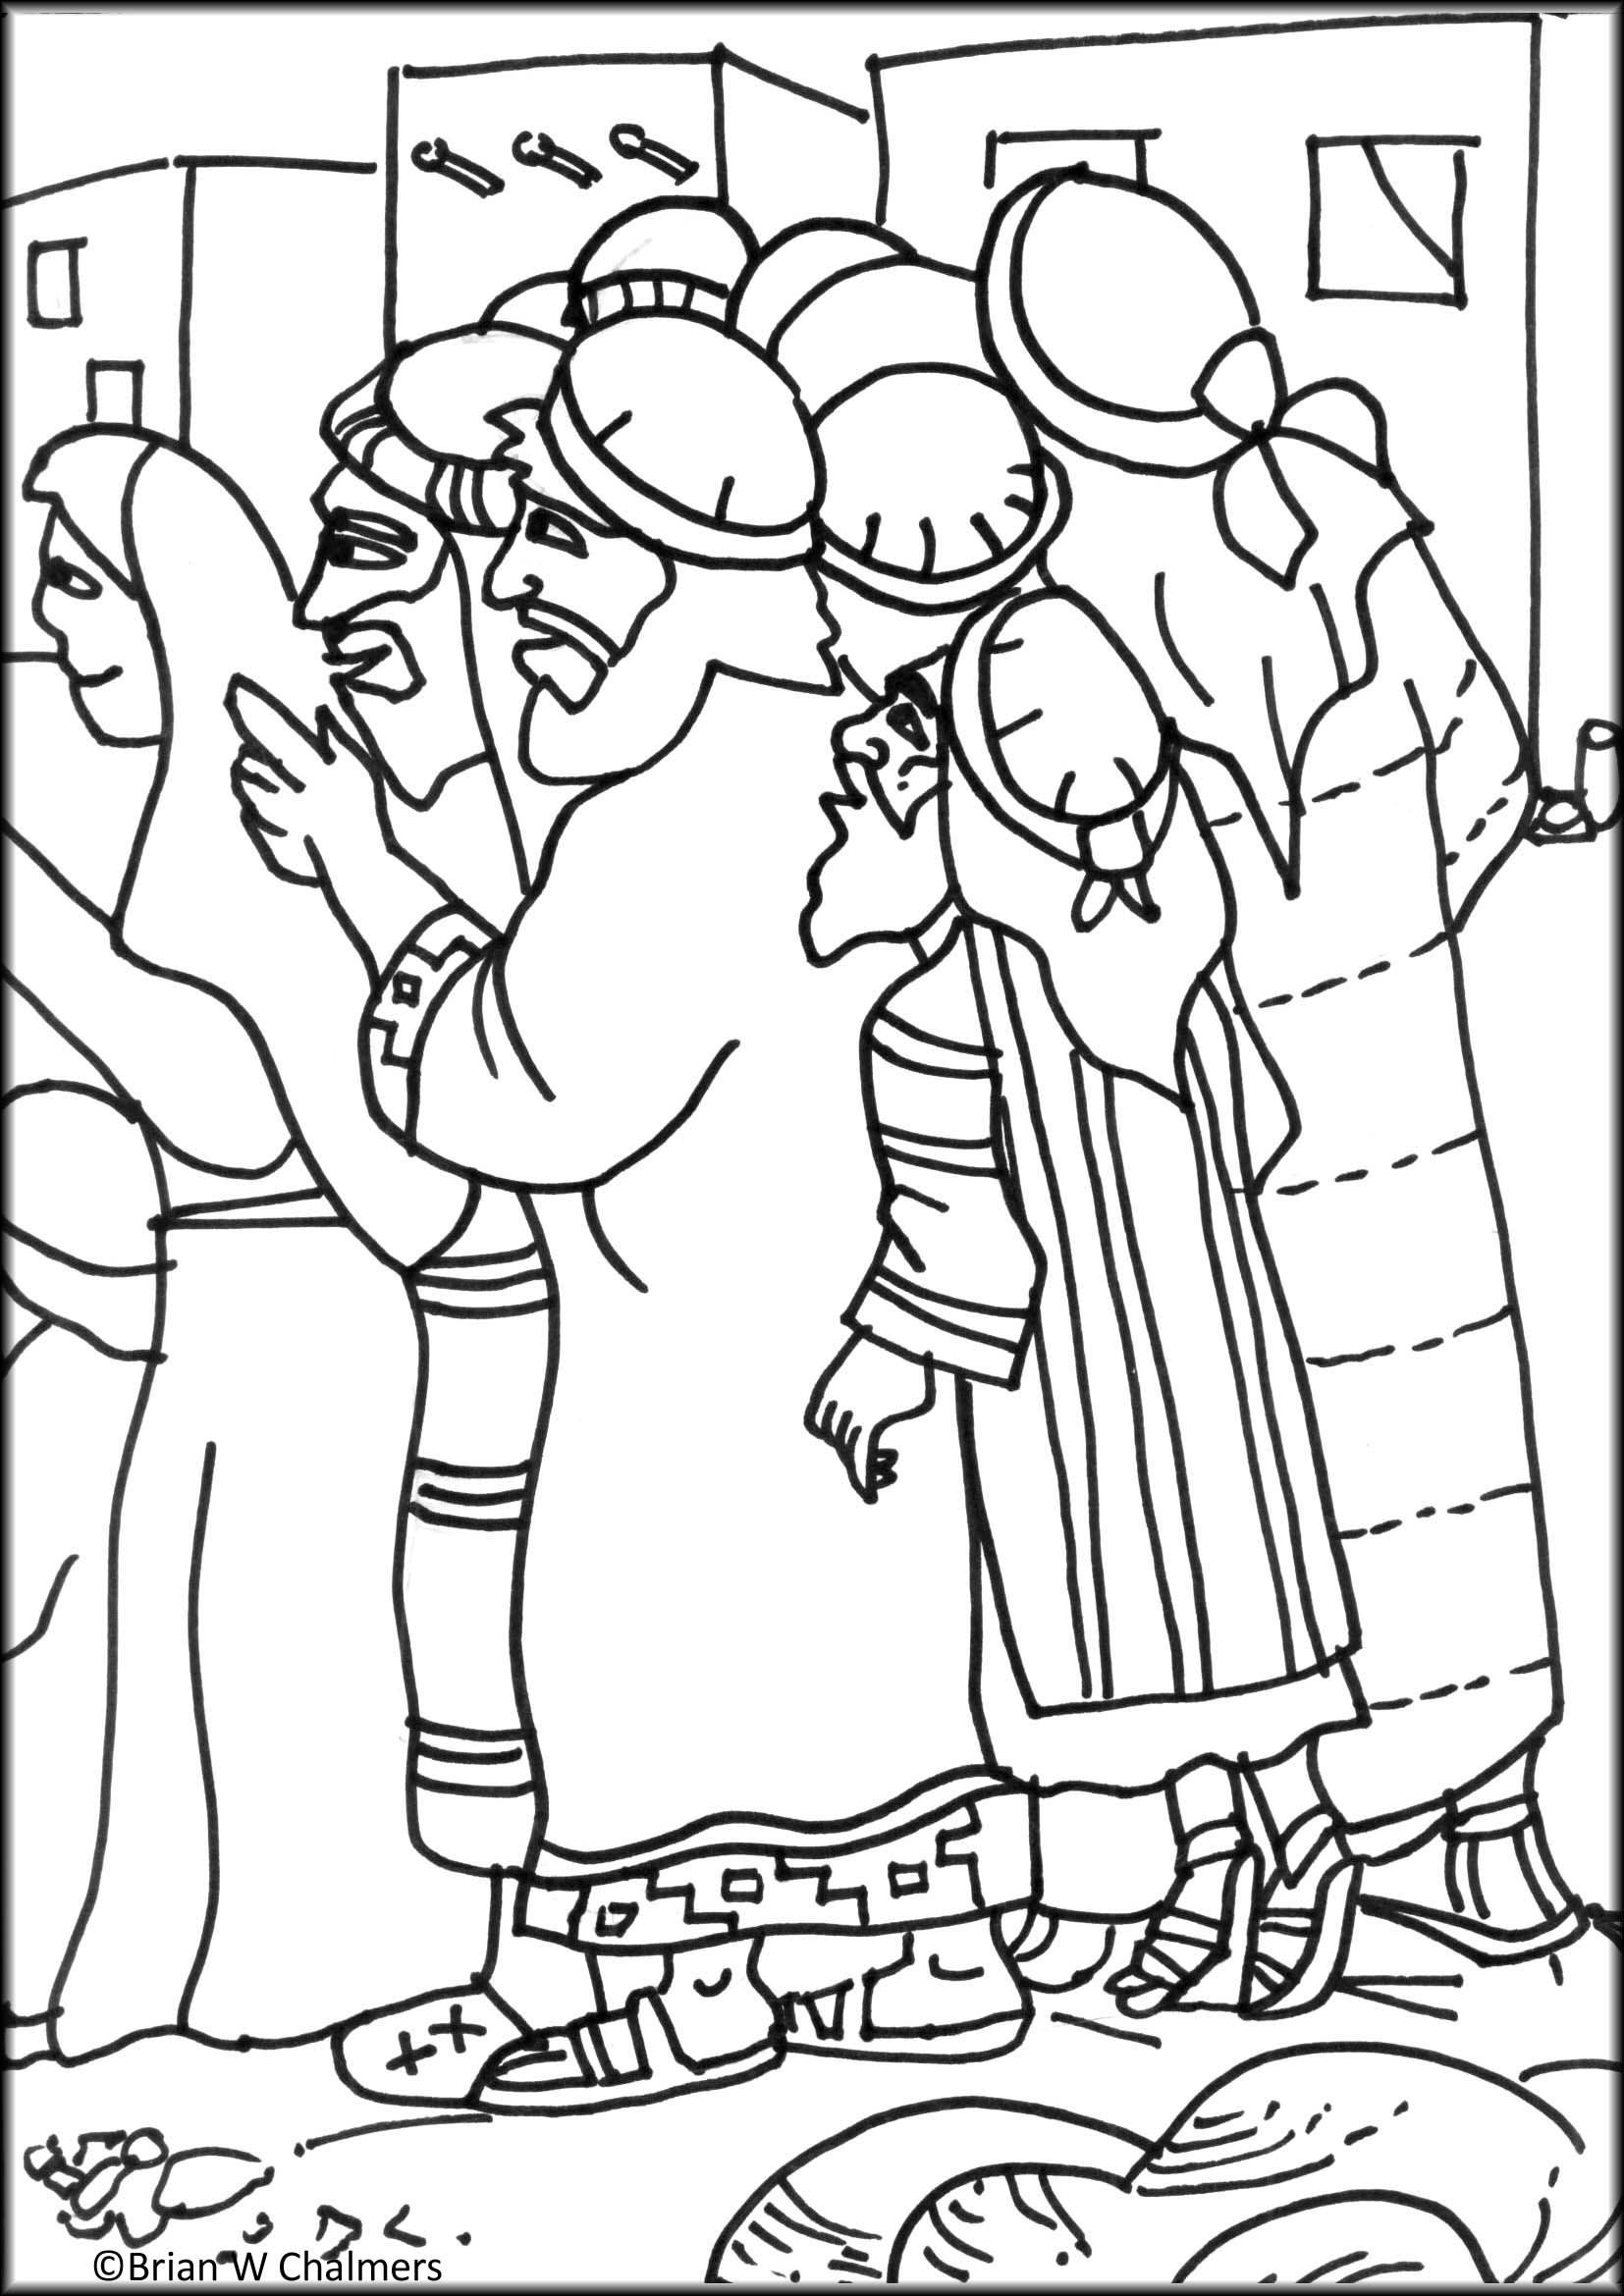 Coloring pages bible stories preschoolers - Zaccheus Coloring Page